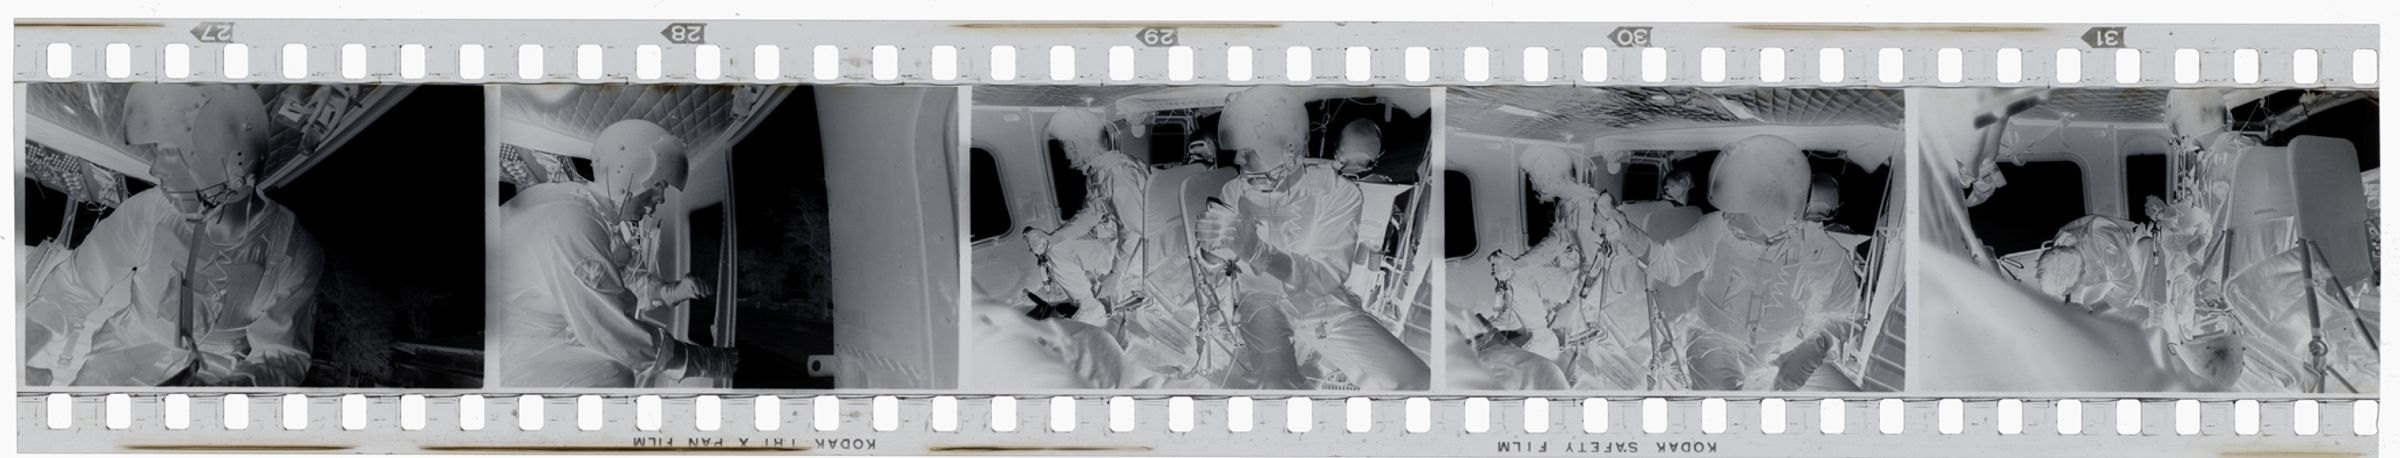 Untitled (Inside Medevac Helicopter, Vietnam)